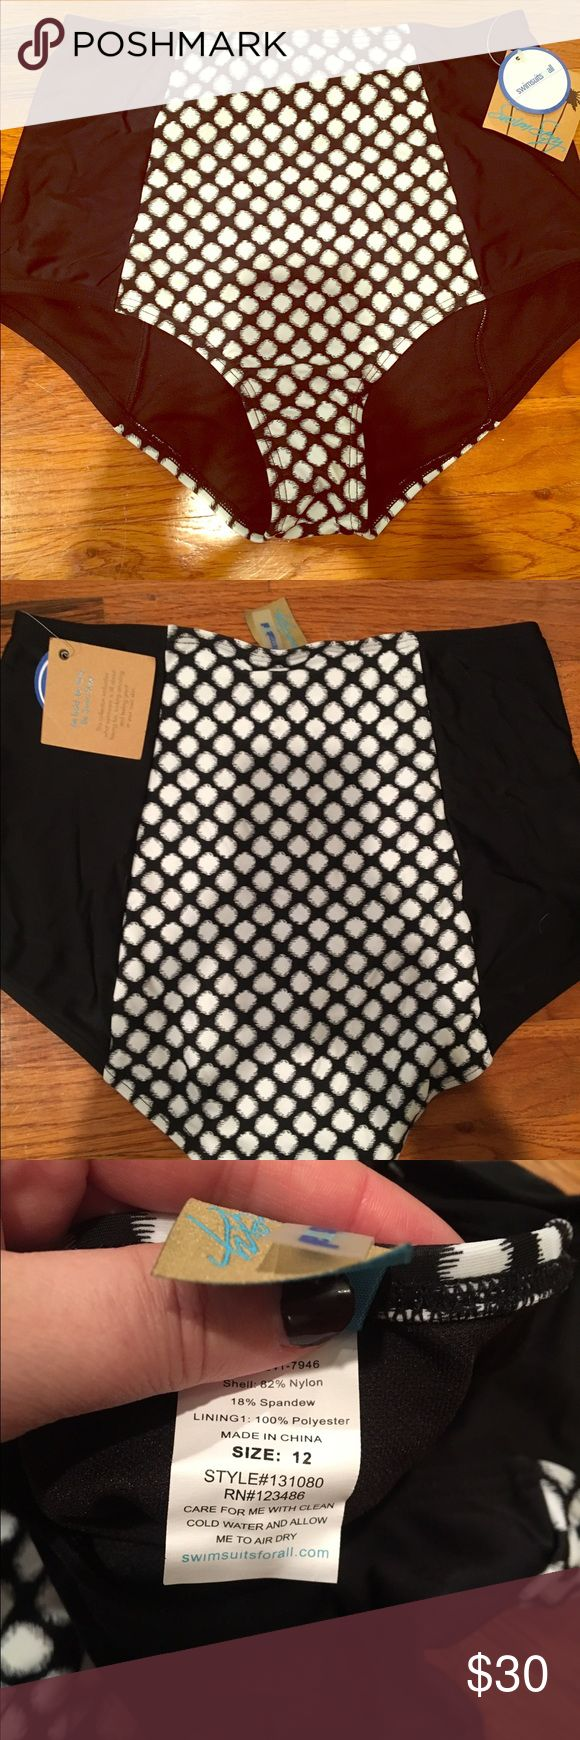 New High waisted black and white bikini bottom High waisted black and white bikini bottoms- new with tag. Never worn. Size 12 swimsuitsforall Swim Bikinis